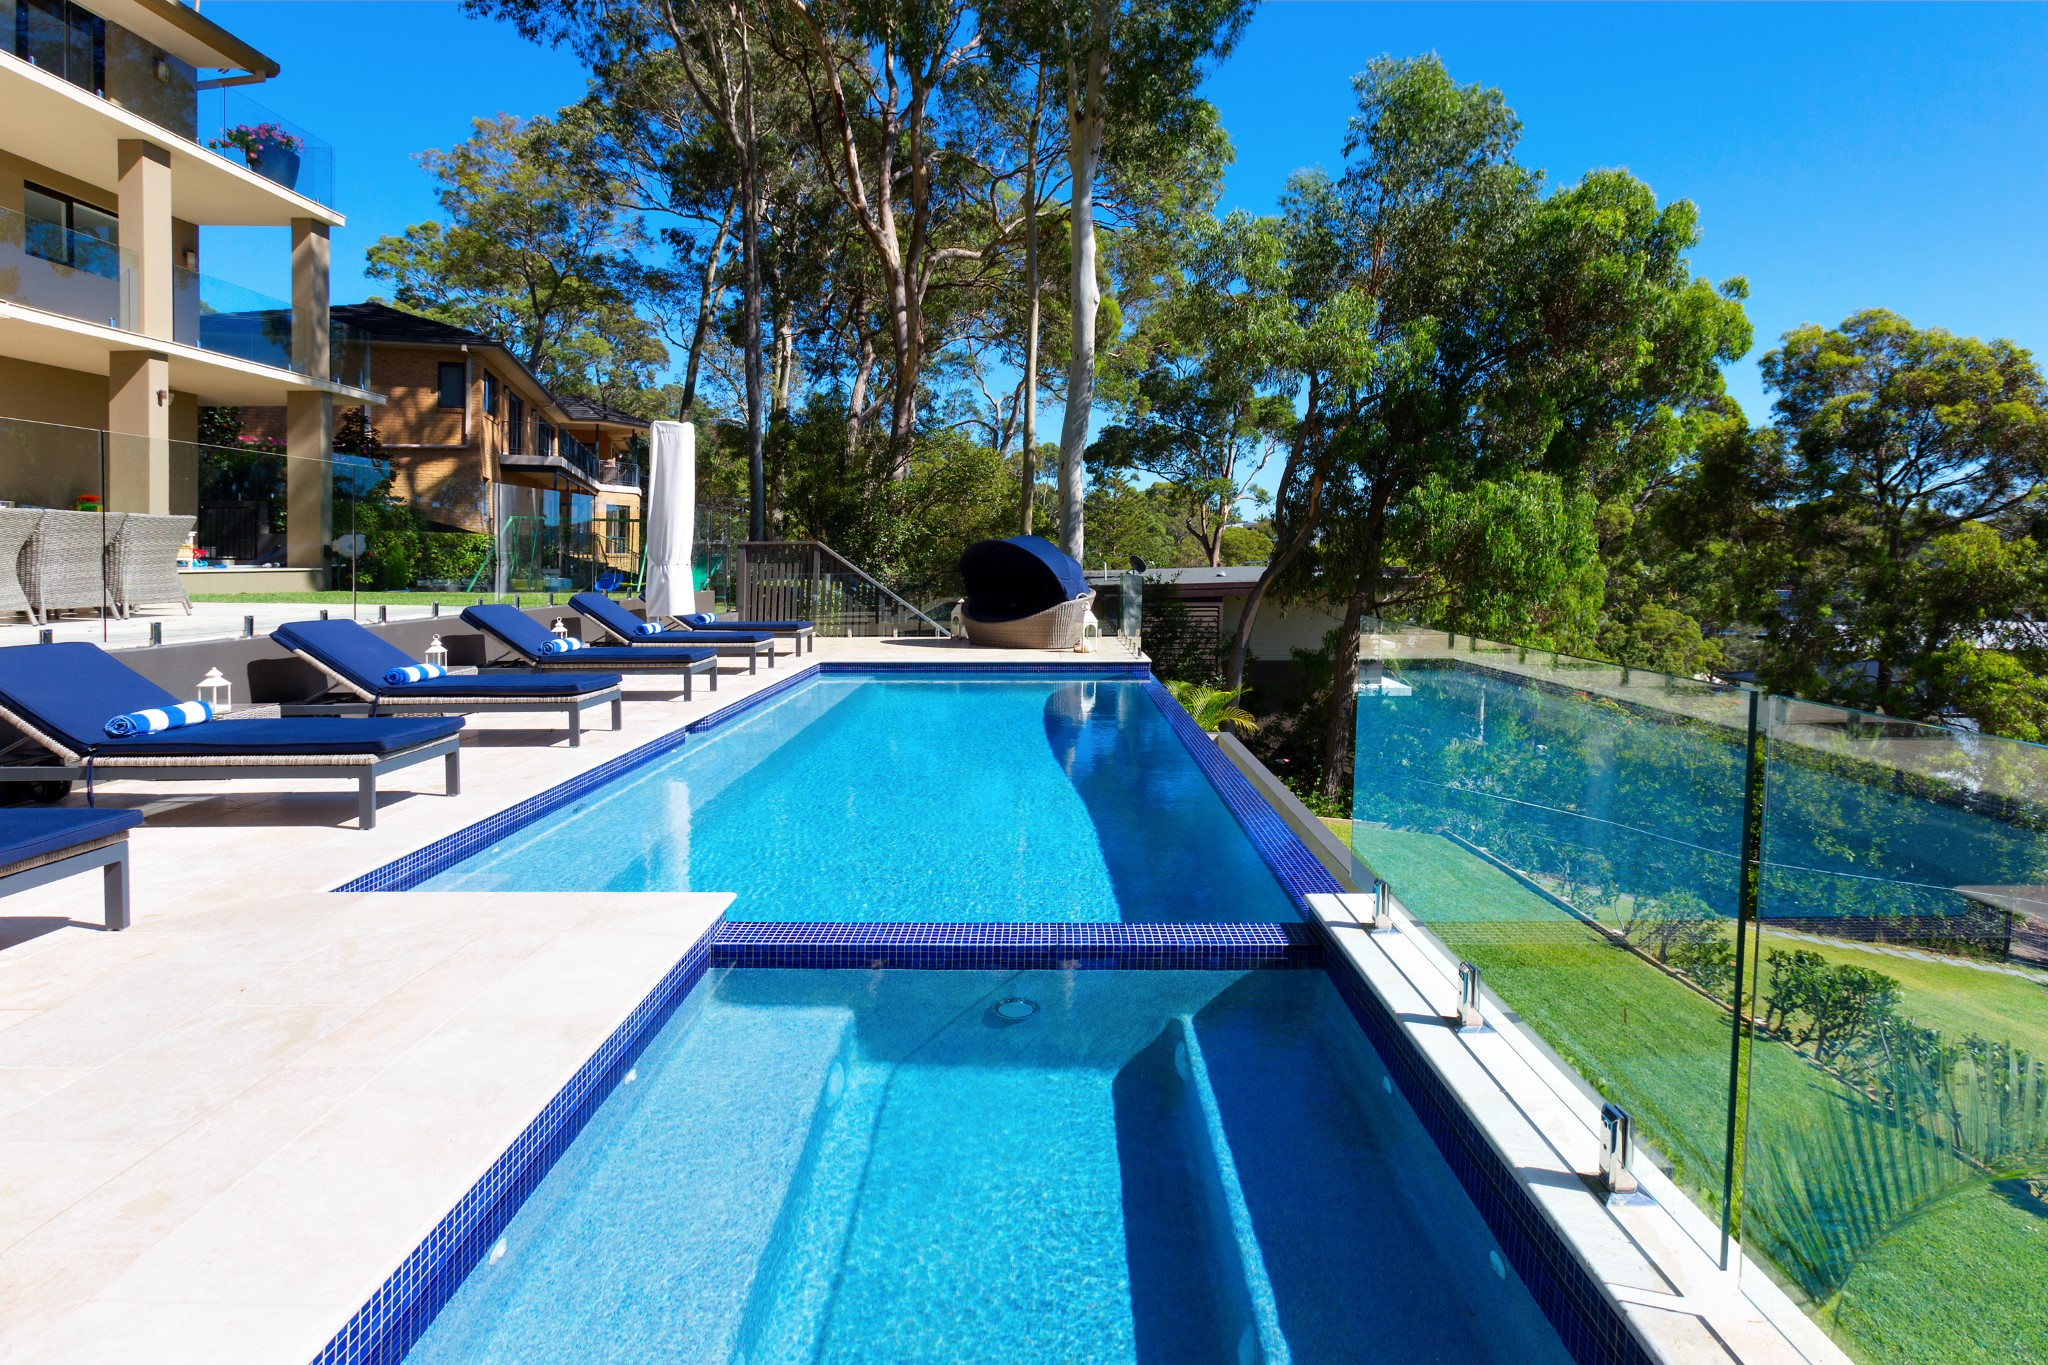 Classic Design of swimming pools in front of the yard in luxury house